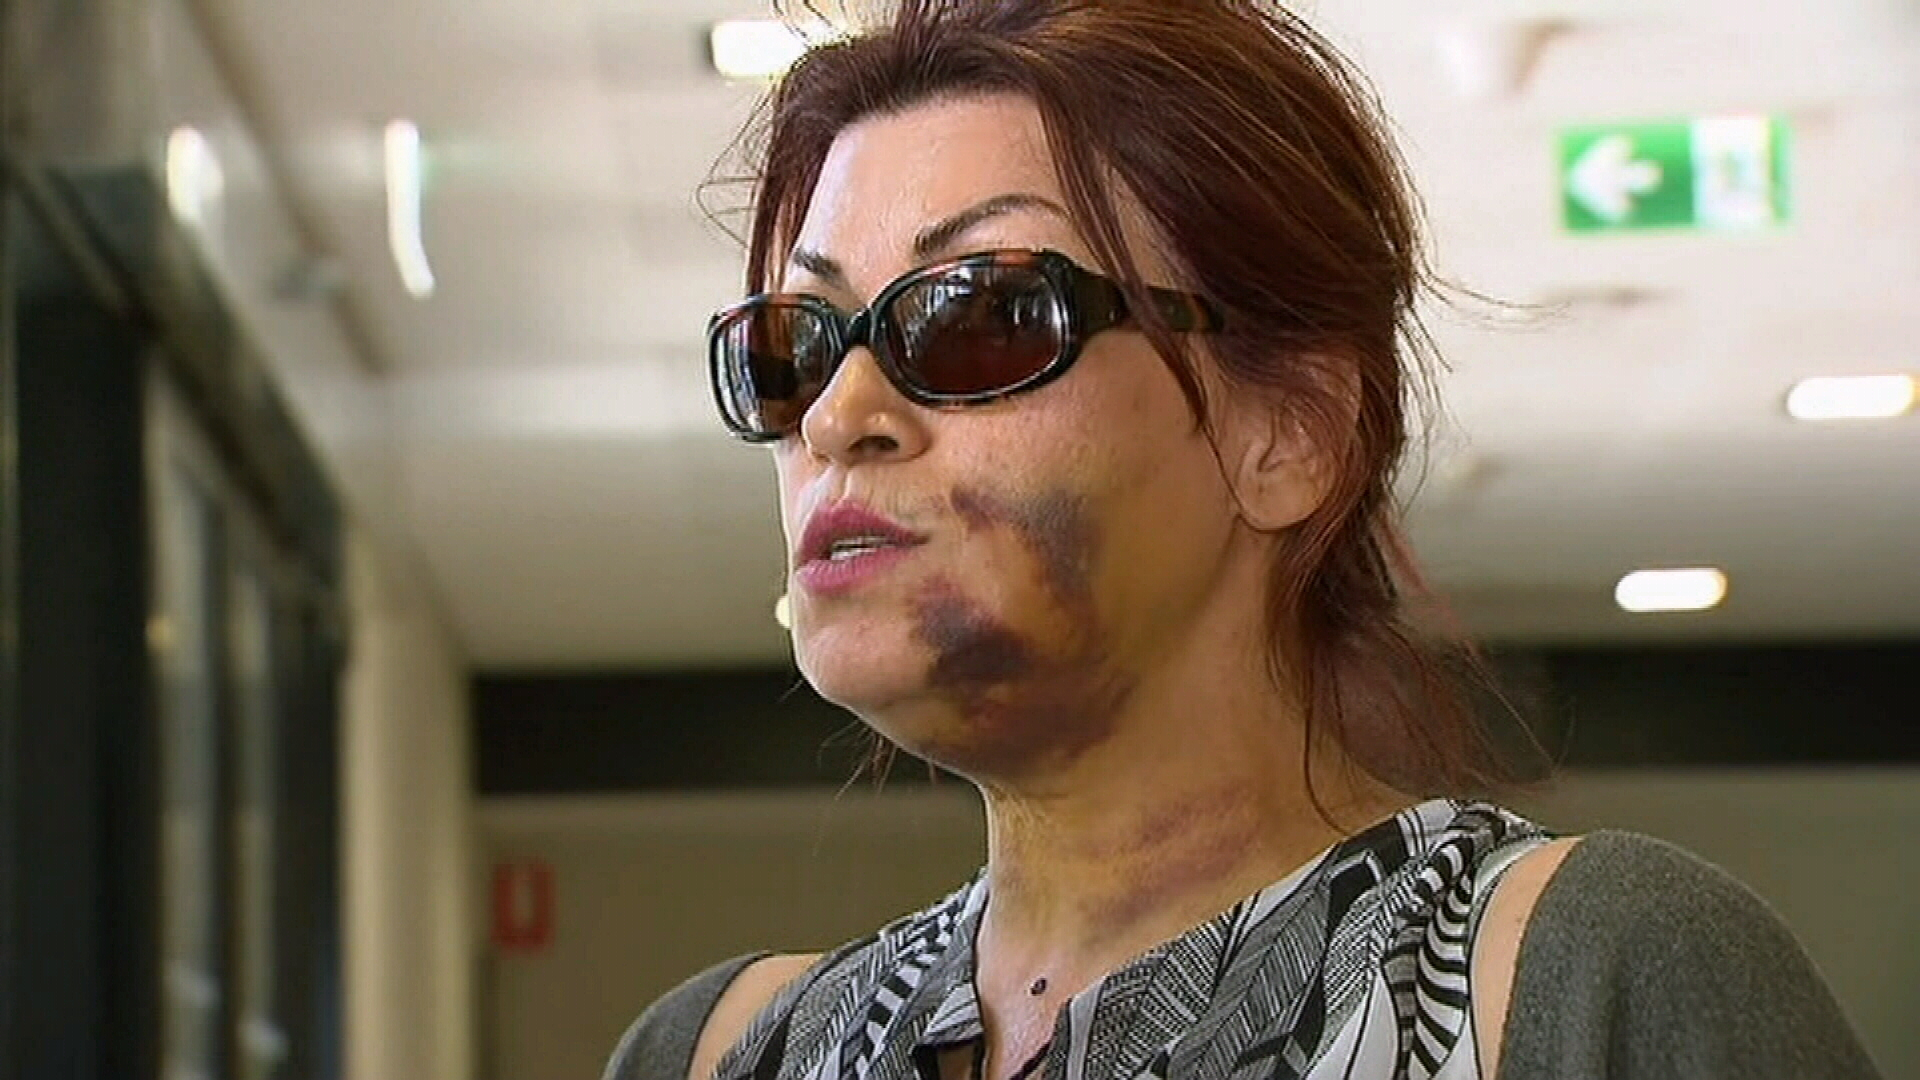 Young man charged over Perth tourist assault